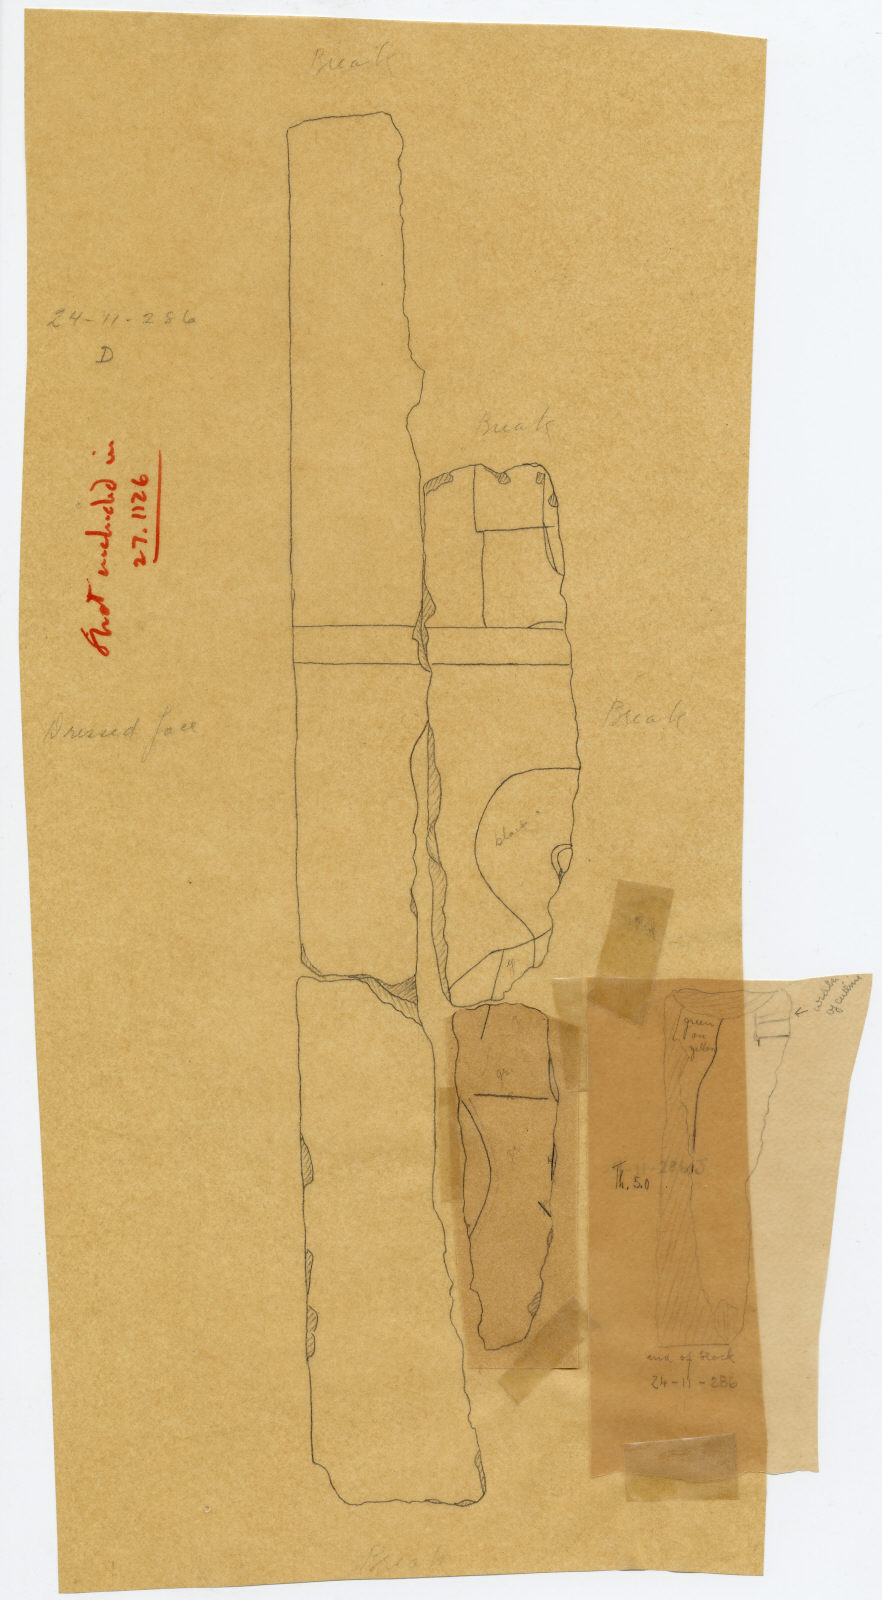 Drawings: Street G 7000 (originally from G I-b): fragments of relief